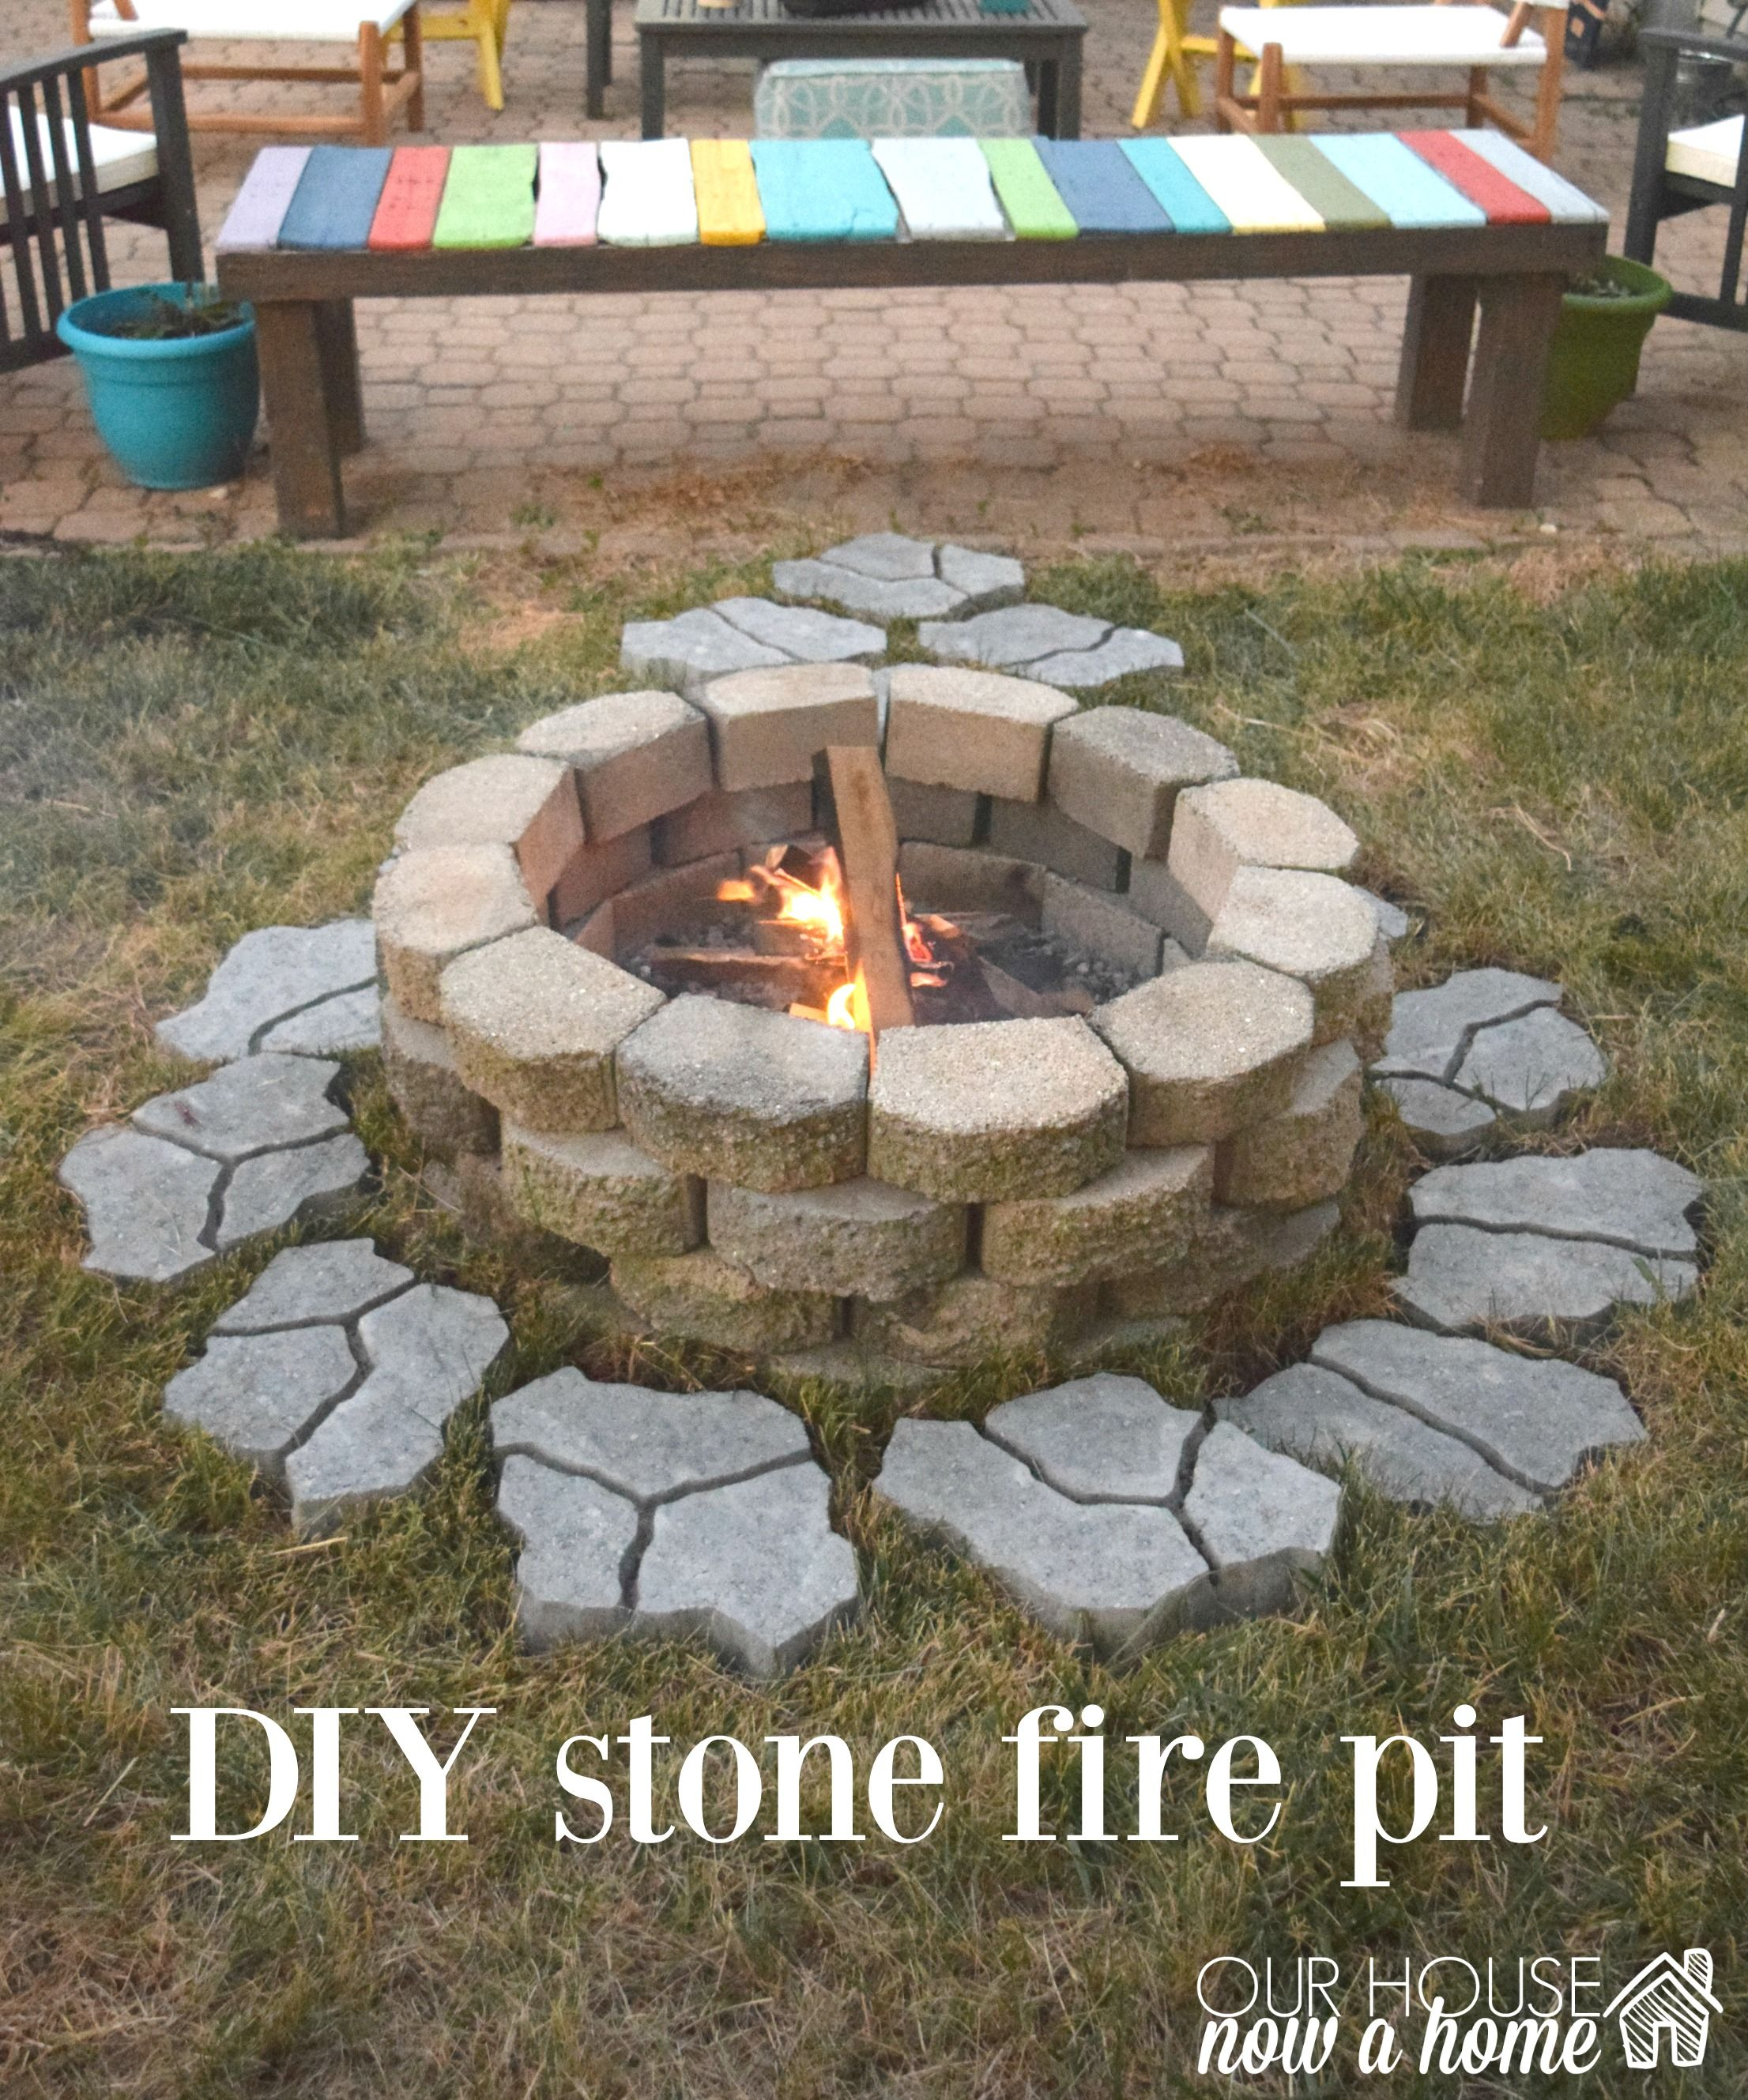 how to build fire pit in backyard | Easy-to-Build DIY ...